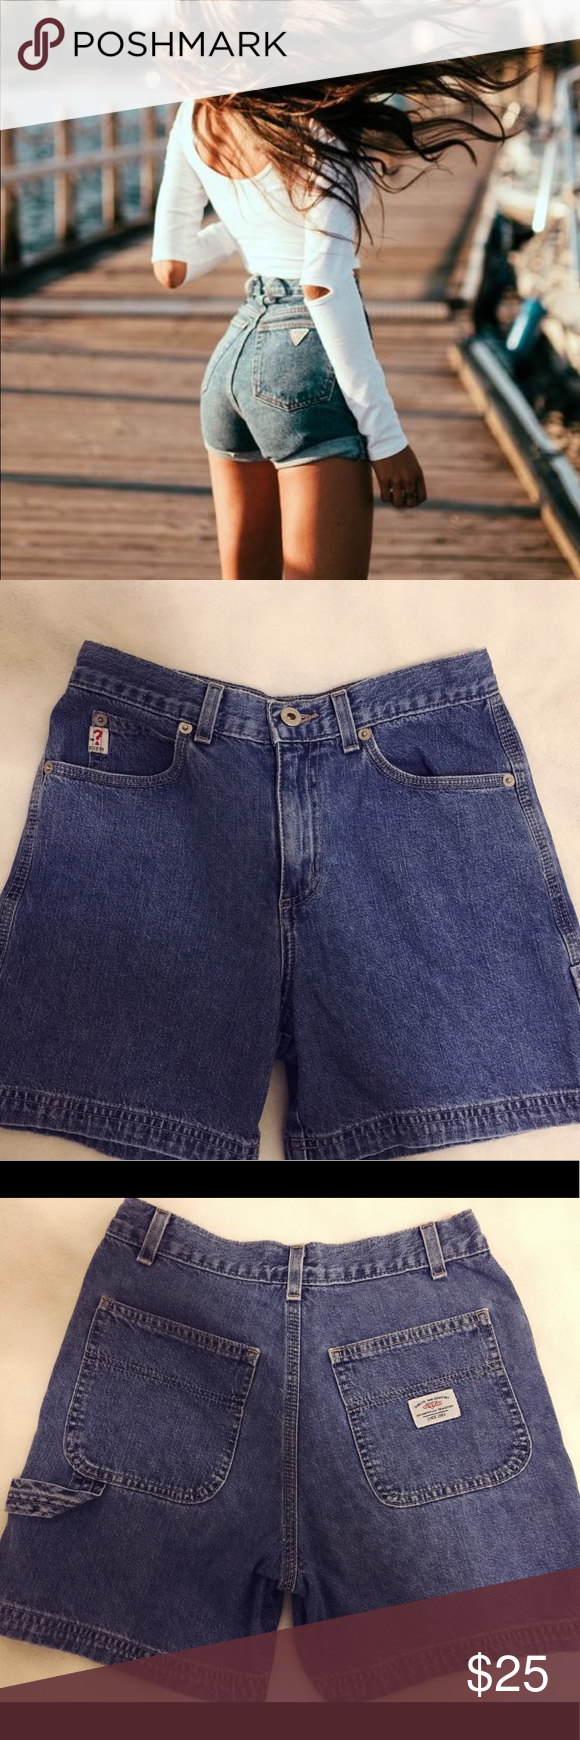 ba56a3c3a09 Brandy for exposure 🍂 New Condition 🍂 Boho and cute! Brandy Melville  Shorts Jean Shorts